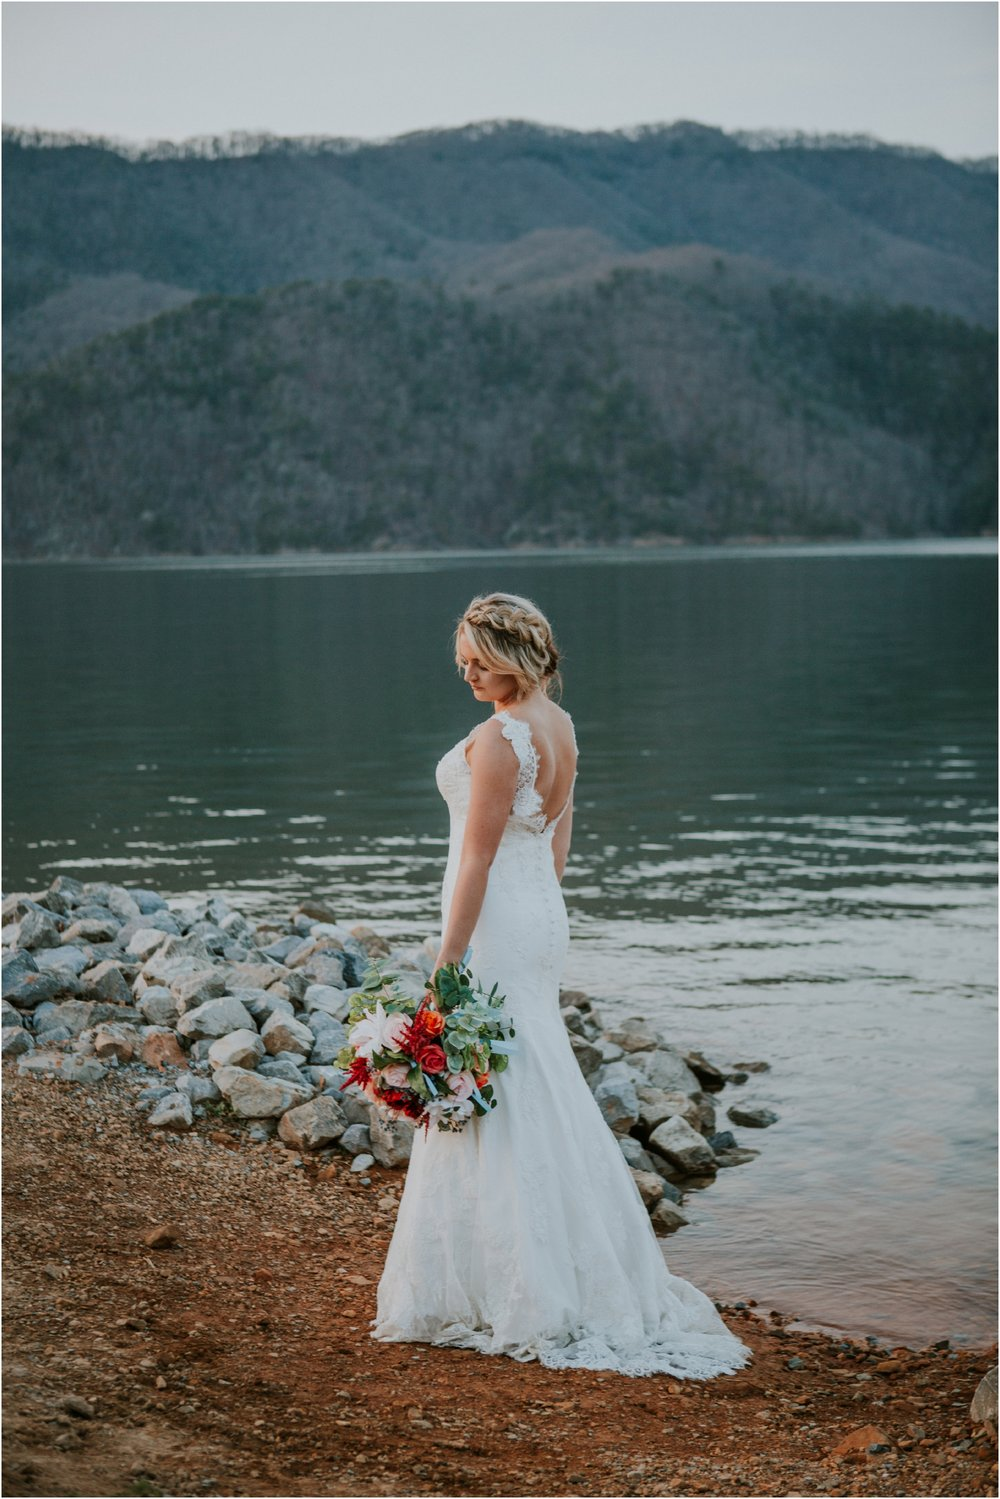 watauga-lake--bohemian-bridal-styled-session-northeast-tennessee-wedding-elopement-photography_0020.jpg